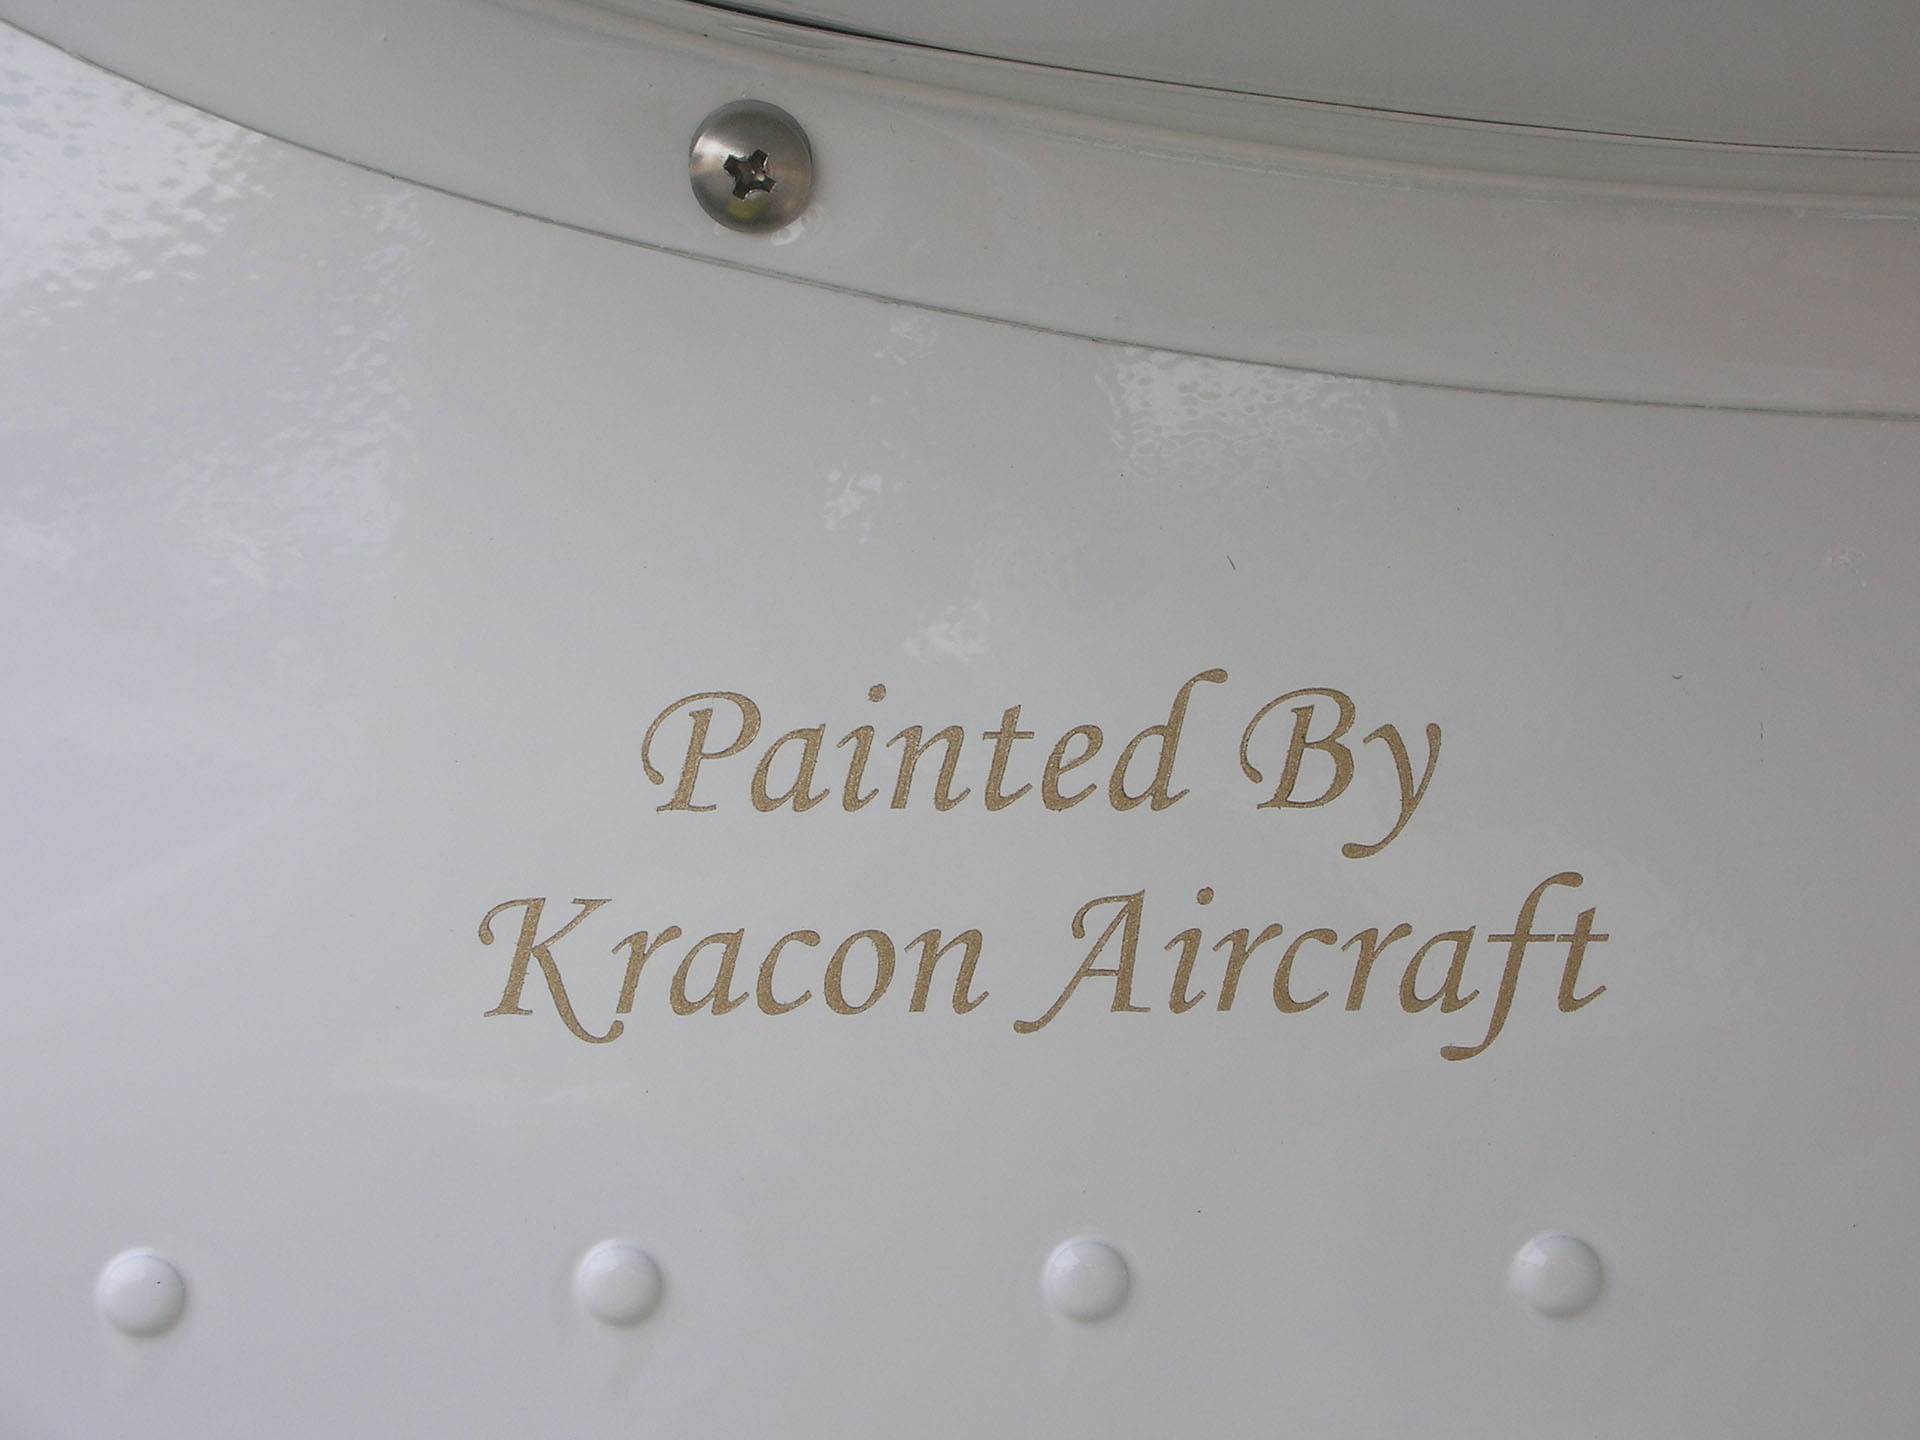 Painting Process/Products | Kracon Aircraft Inc